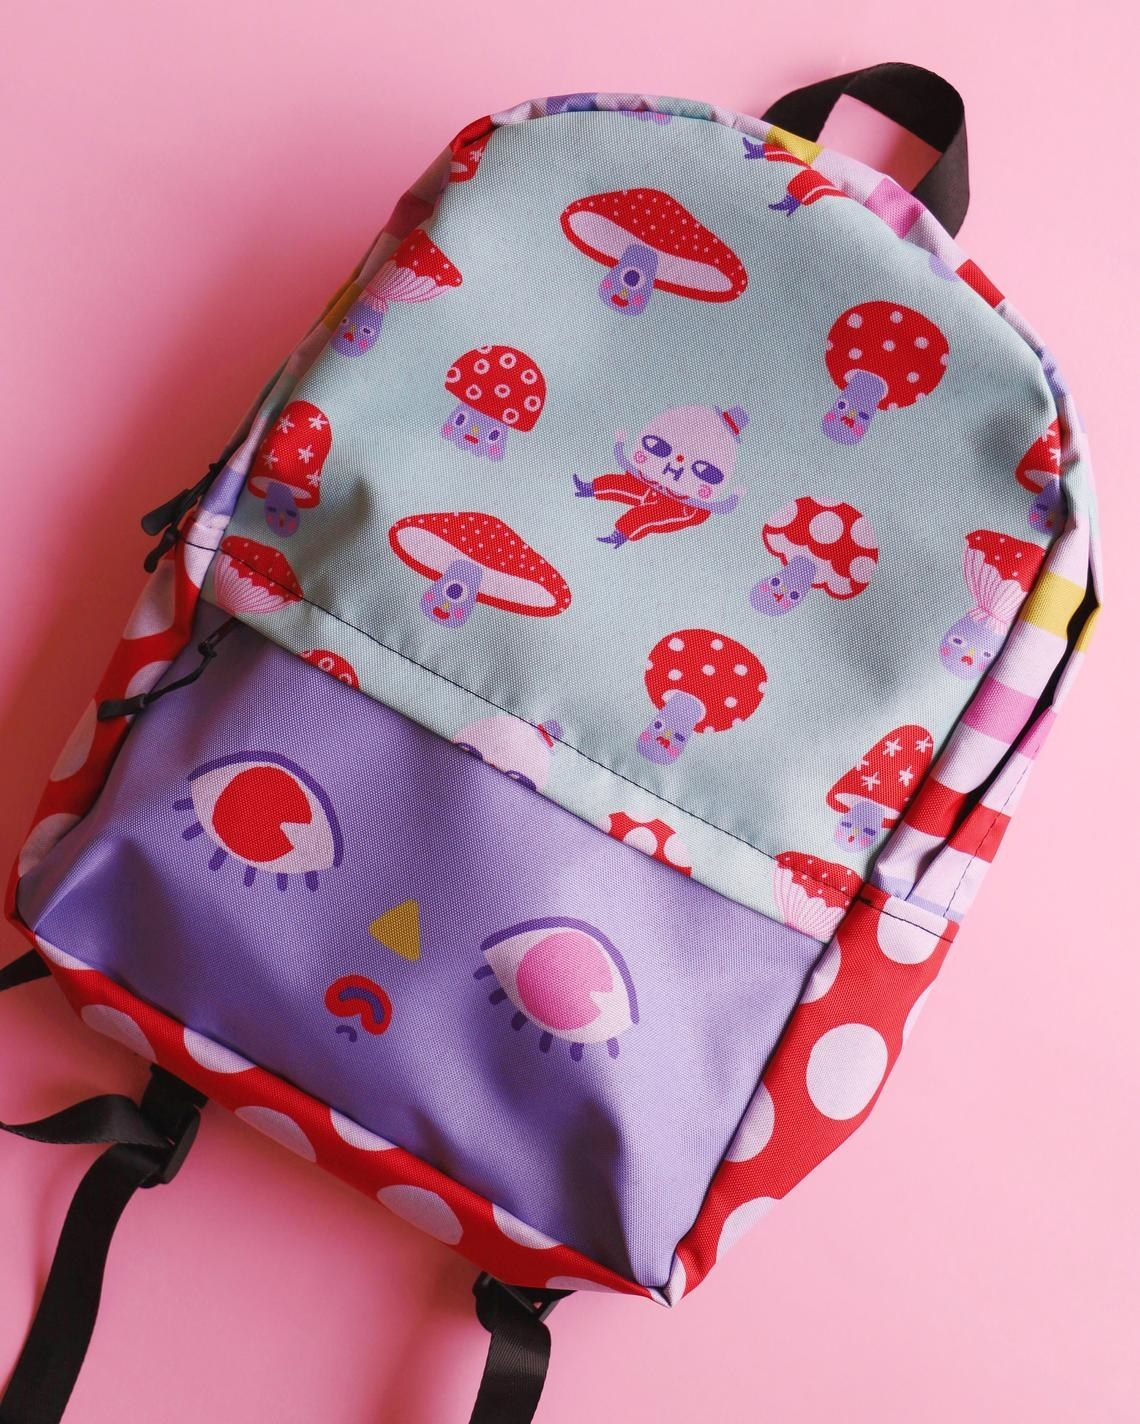 pastel backpack with face on the front pocket, rainbow stripes on sides, and mushrooms and humpy dumpty on the top front area